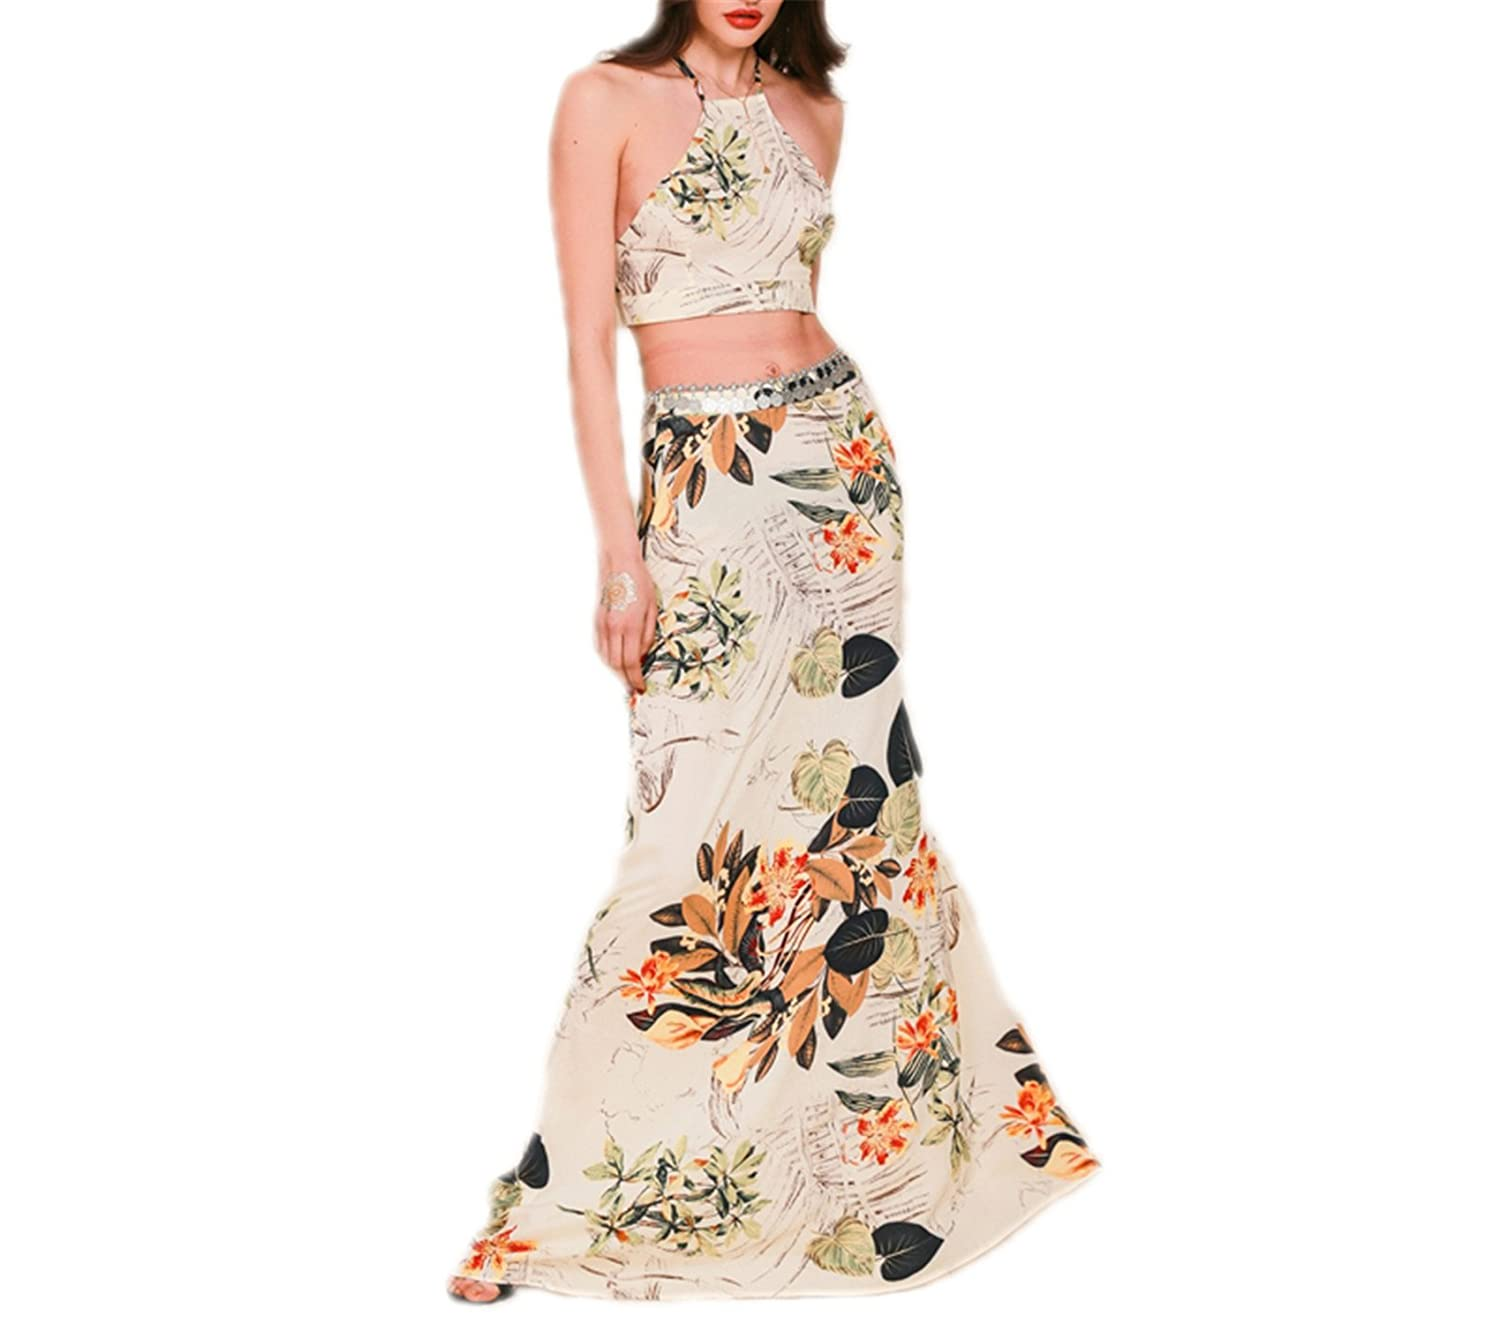 Amazon.com: SuperBlu Fashion Apparel NEW summer boho style Flower print long dress Two pieces backless halter cross women maxi dress vestidos: Clothing